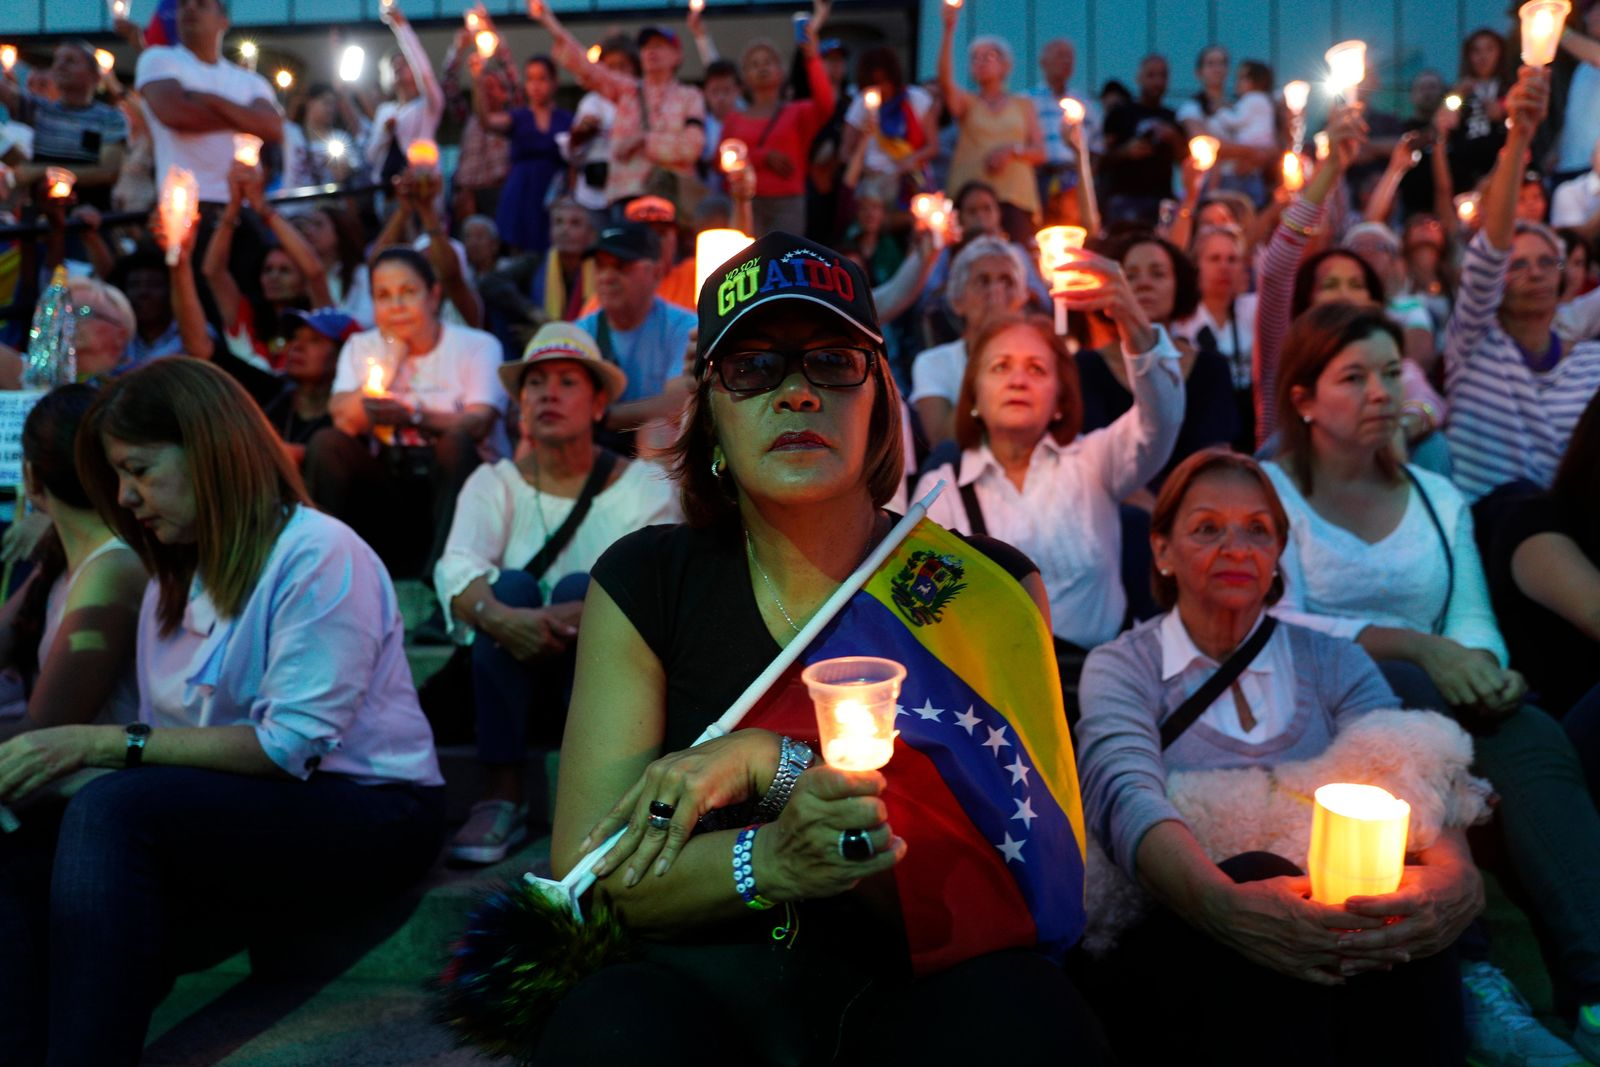 Opponents to Venezuela's President Nicolas Maduro hold a vigil for those killed in street fighting over the past week in Caracas, Venezuela, Sunday, May 5, 2019. Opposition leader Juan Guaidó called in vain for a military uprising to overthrow President Nicolas Maduro, and five people were killed in clashes between protesters and police. (AP Photo/Martin Mejia)